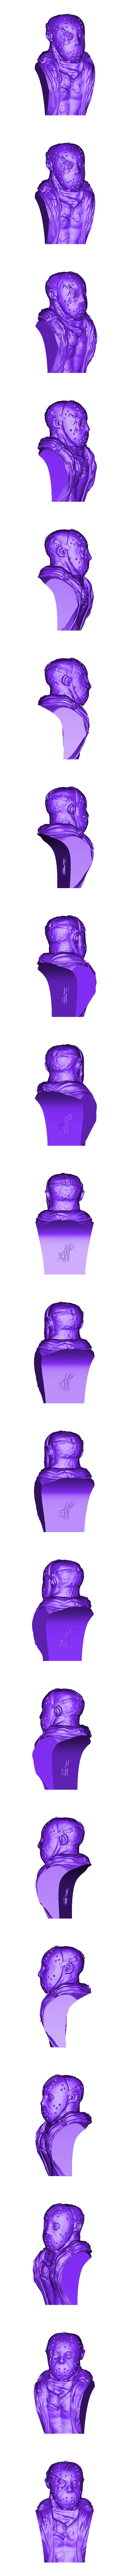 jason_bust.stl Download STL file Jason Voorhees: Bust for 3D printing • 3D printable model, AntonioPugliese